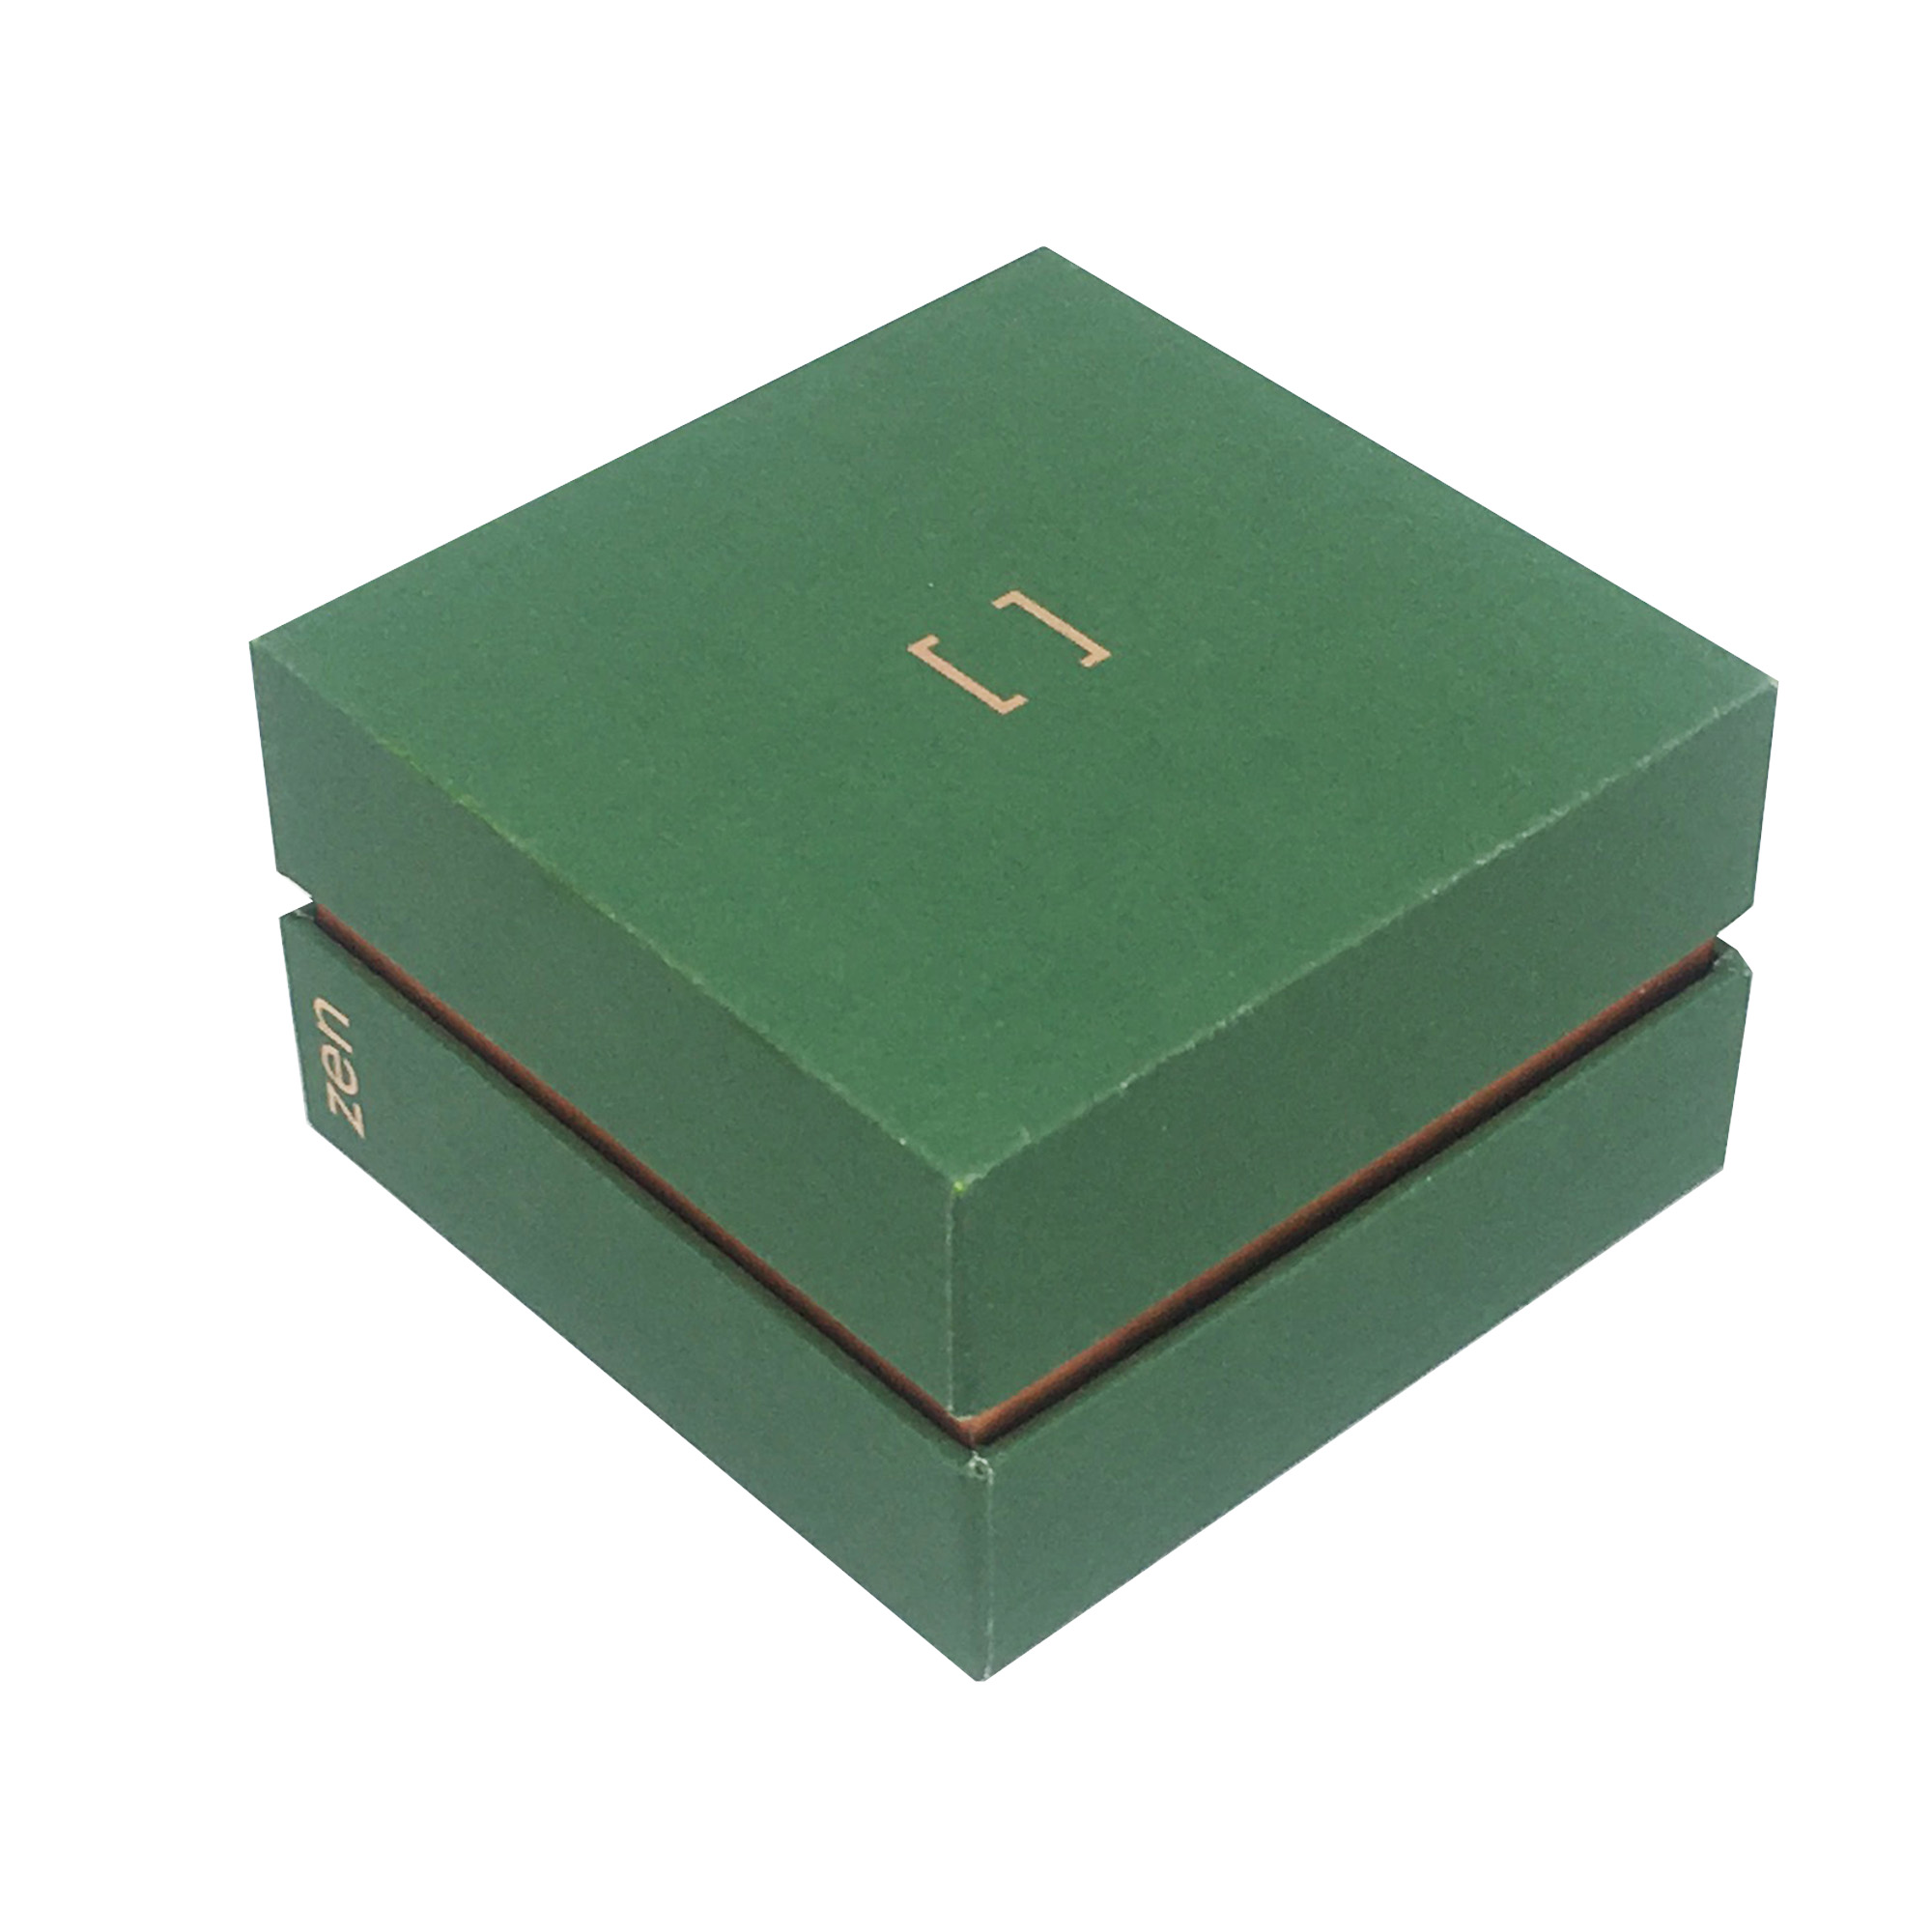 Perfume box Cosmetic Creams customized Packaging Liquid Lipstick fashion luxury packing  Box